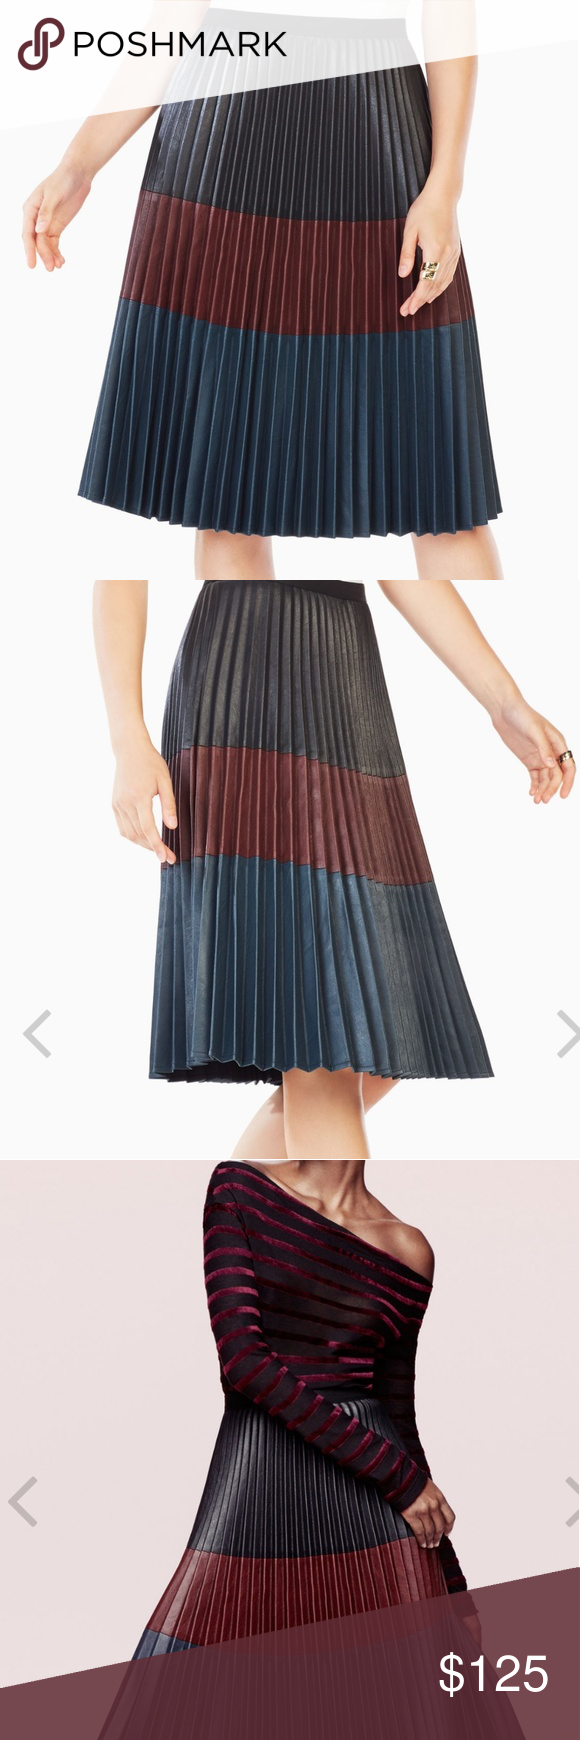 9b59db7631 BCBG MAX AZRIA ELSA PLEATED SKIRT SIZE SIZE SMALL This calf-skimming skirt  is crafted